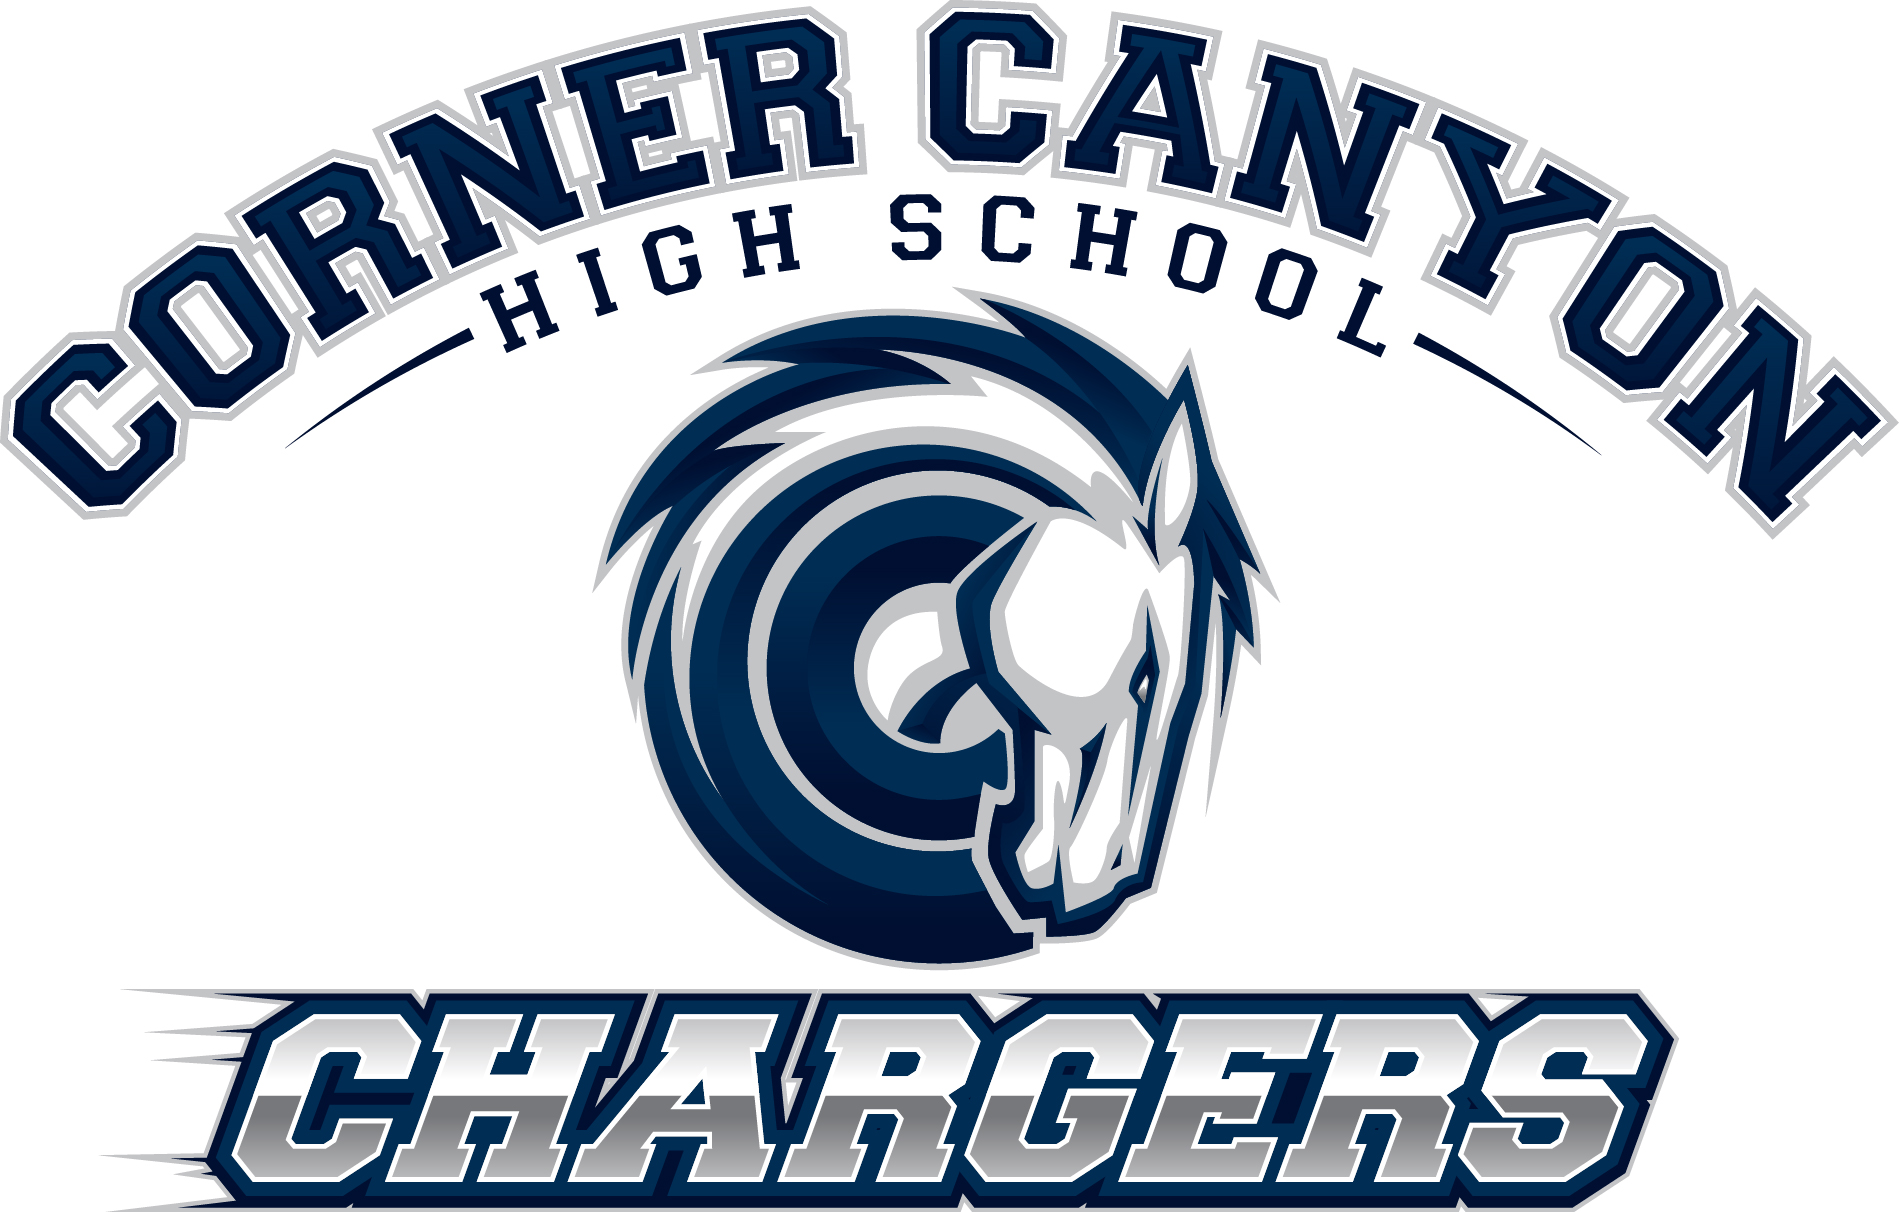 Corner Canyon high school logo